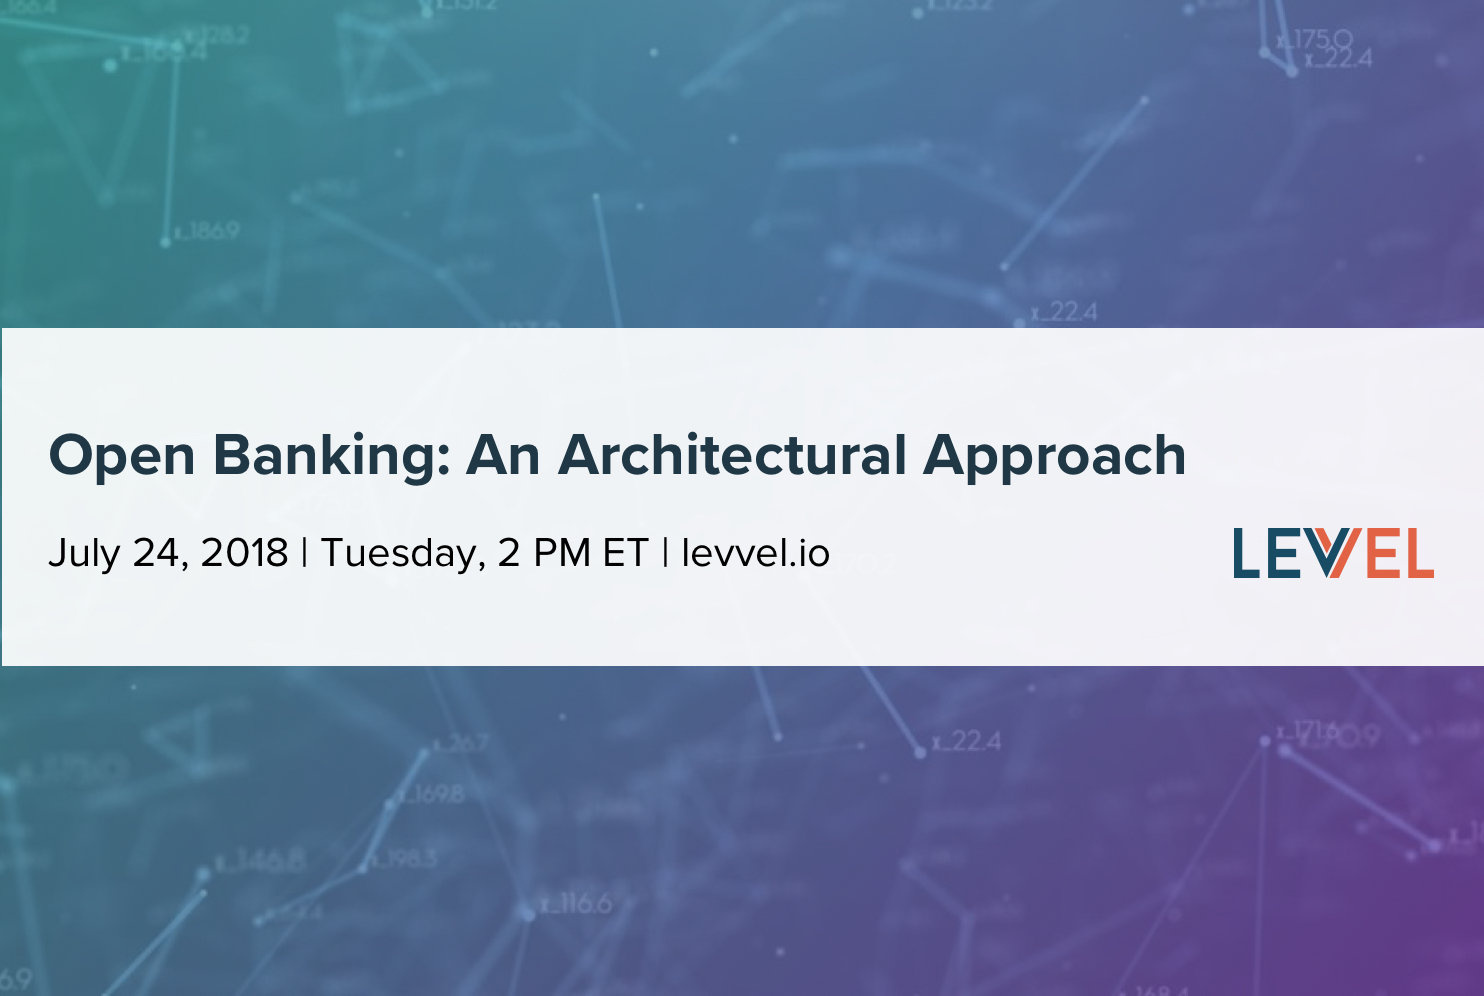 Open Banking: An Architectural Approach